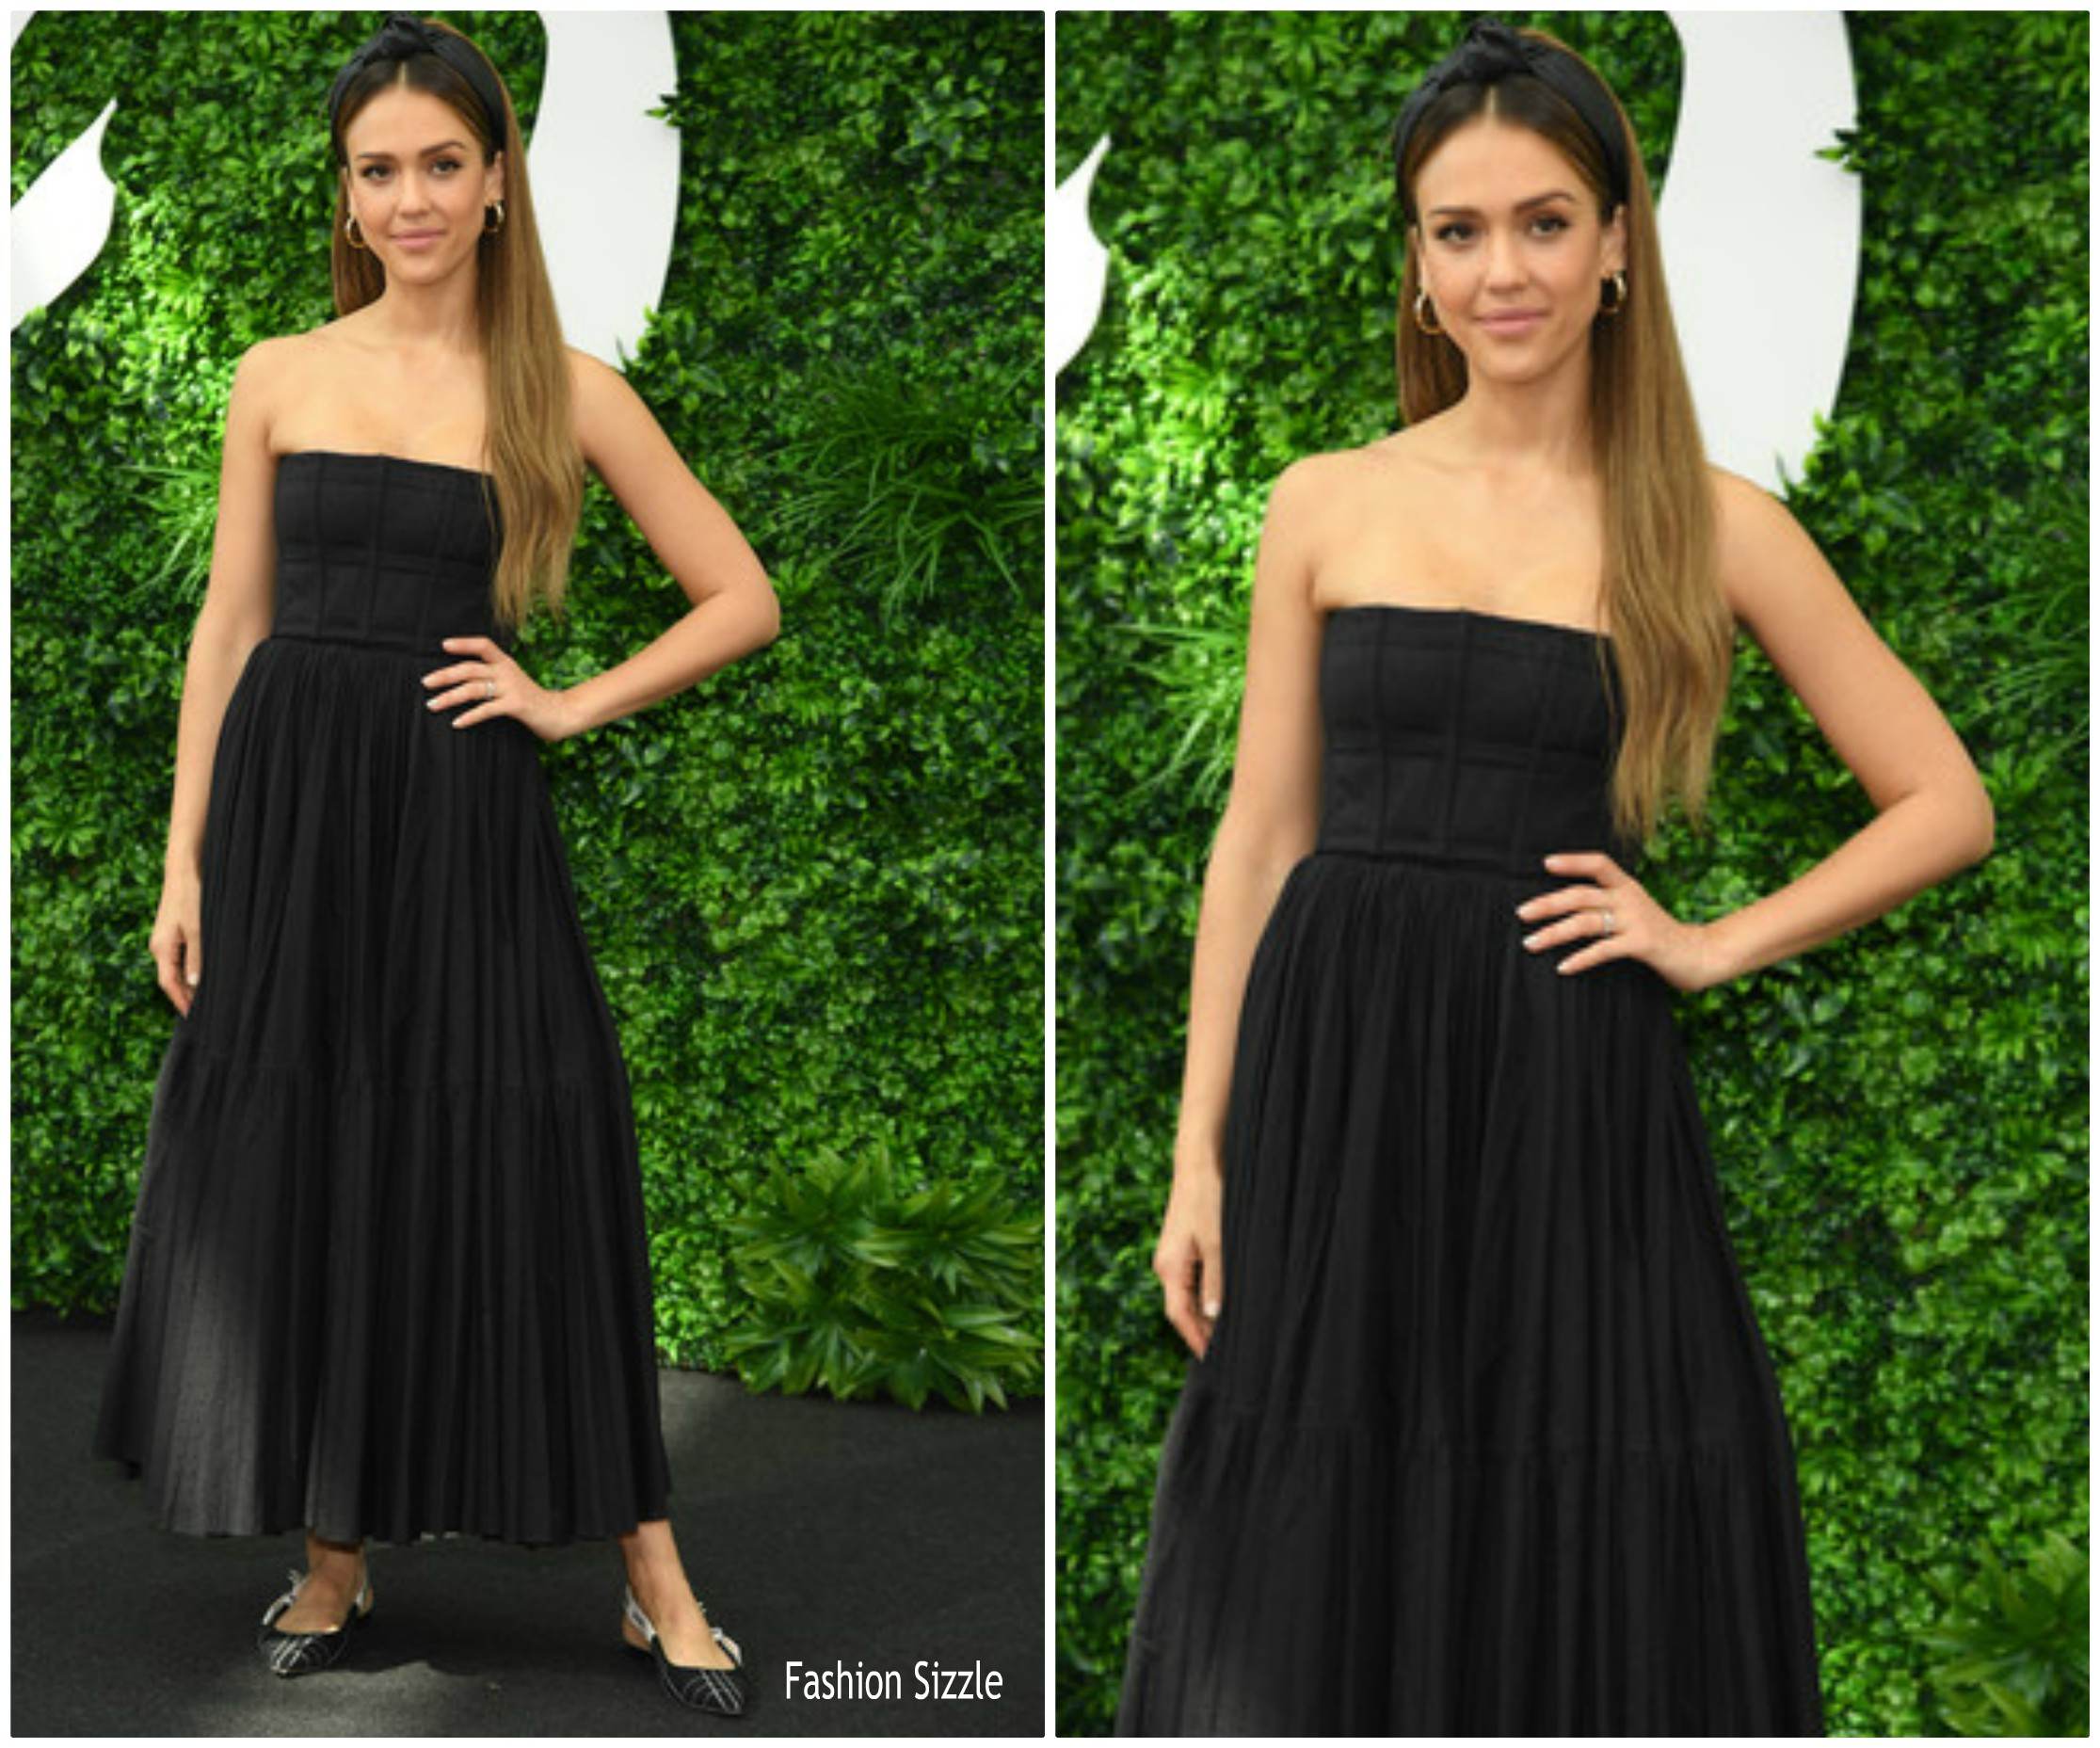 jessica-alba-in-christian-dior-2019-monte-carlo-tv-festival-day-2